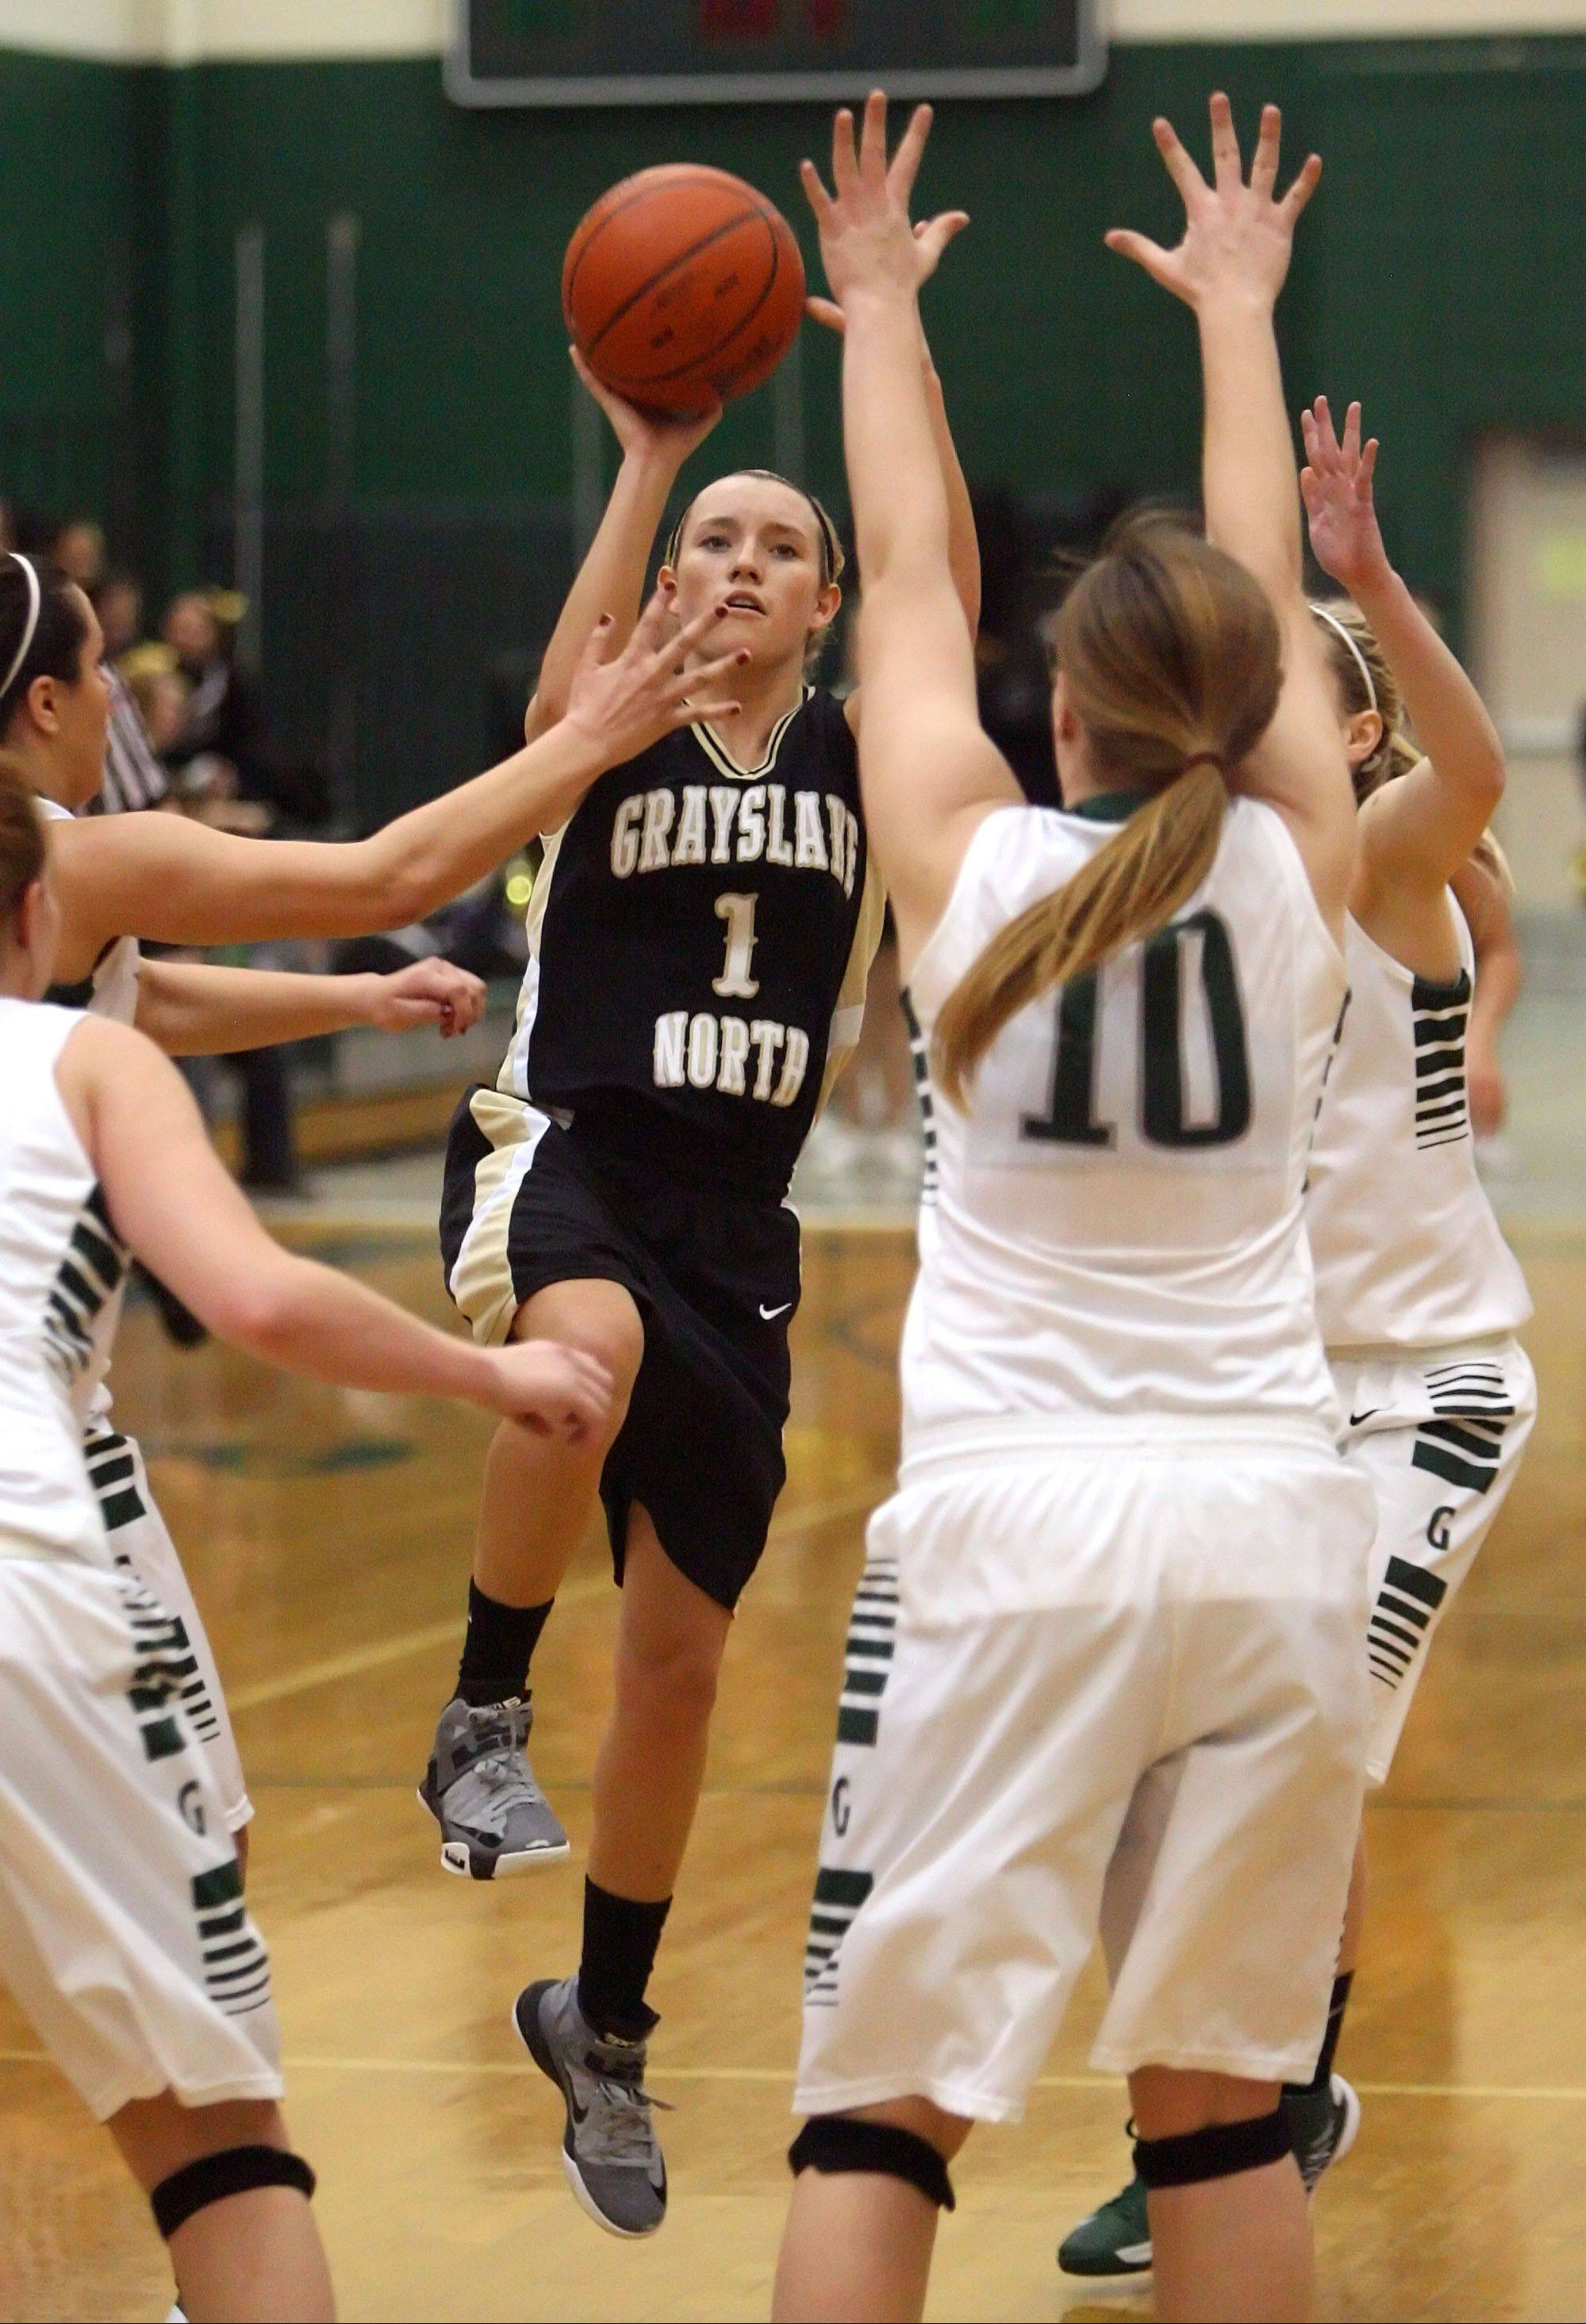 Grayslake North's Jordyn Bowen takes a shot at the end of the first half over Grayslake Central's Maddy Miller on Tuesday night at Grayslake Central.